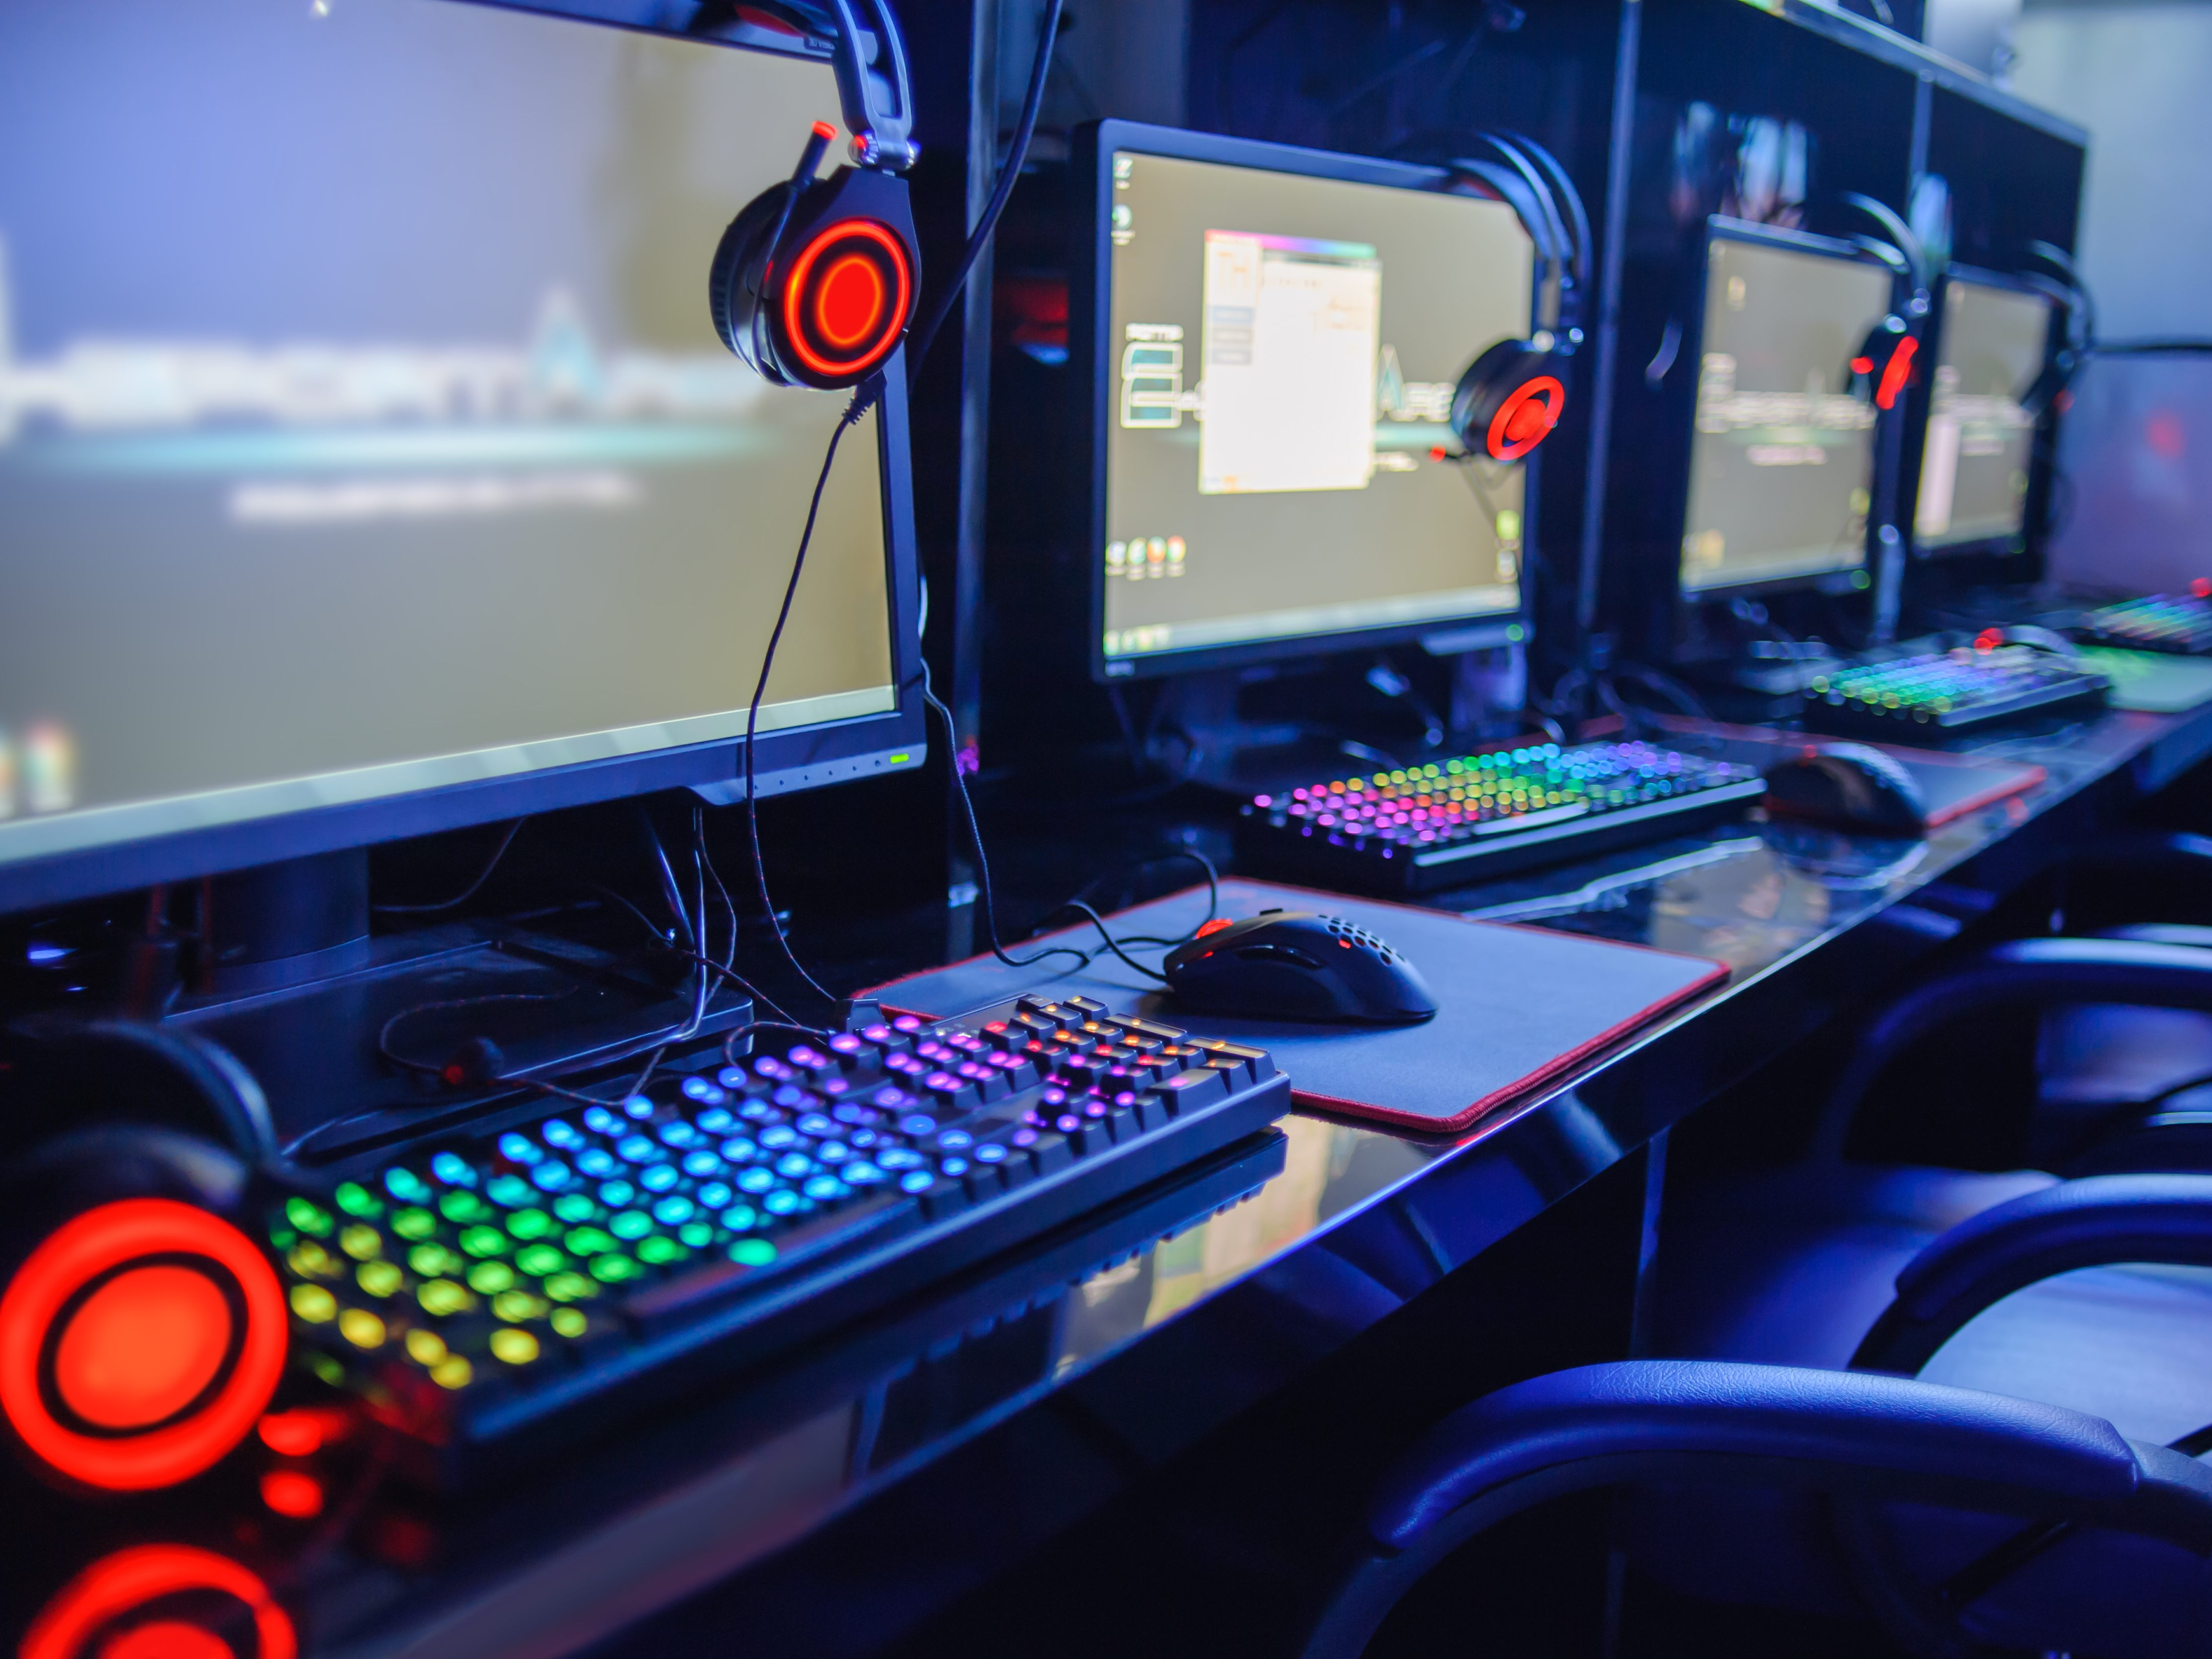 Professional gaming — no longer something to 'LoL' about: Some IP implications of the eSports industry